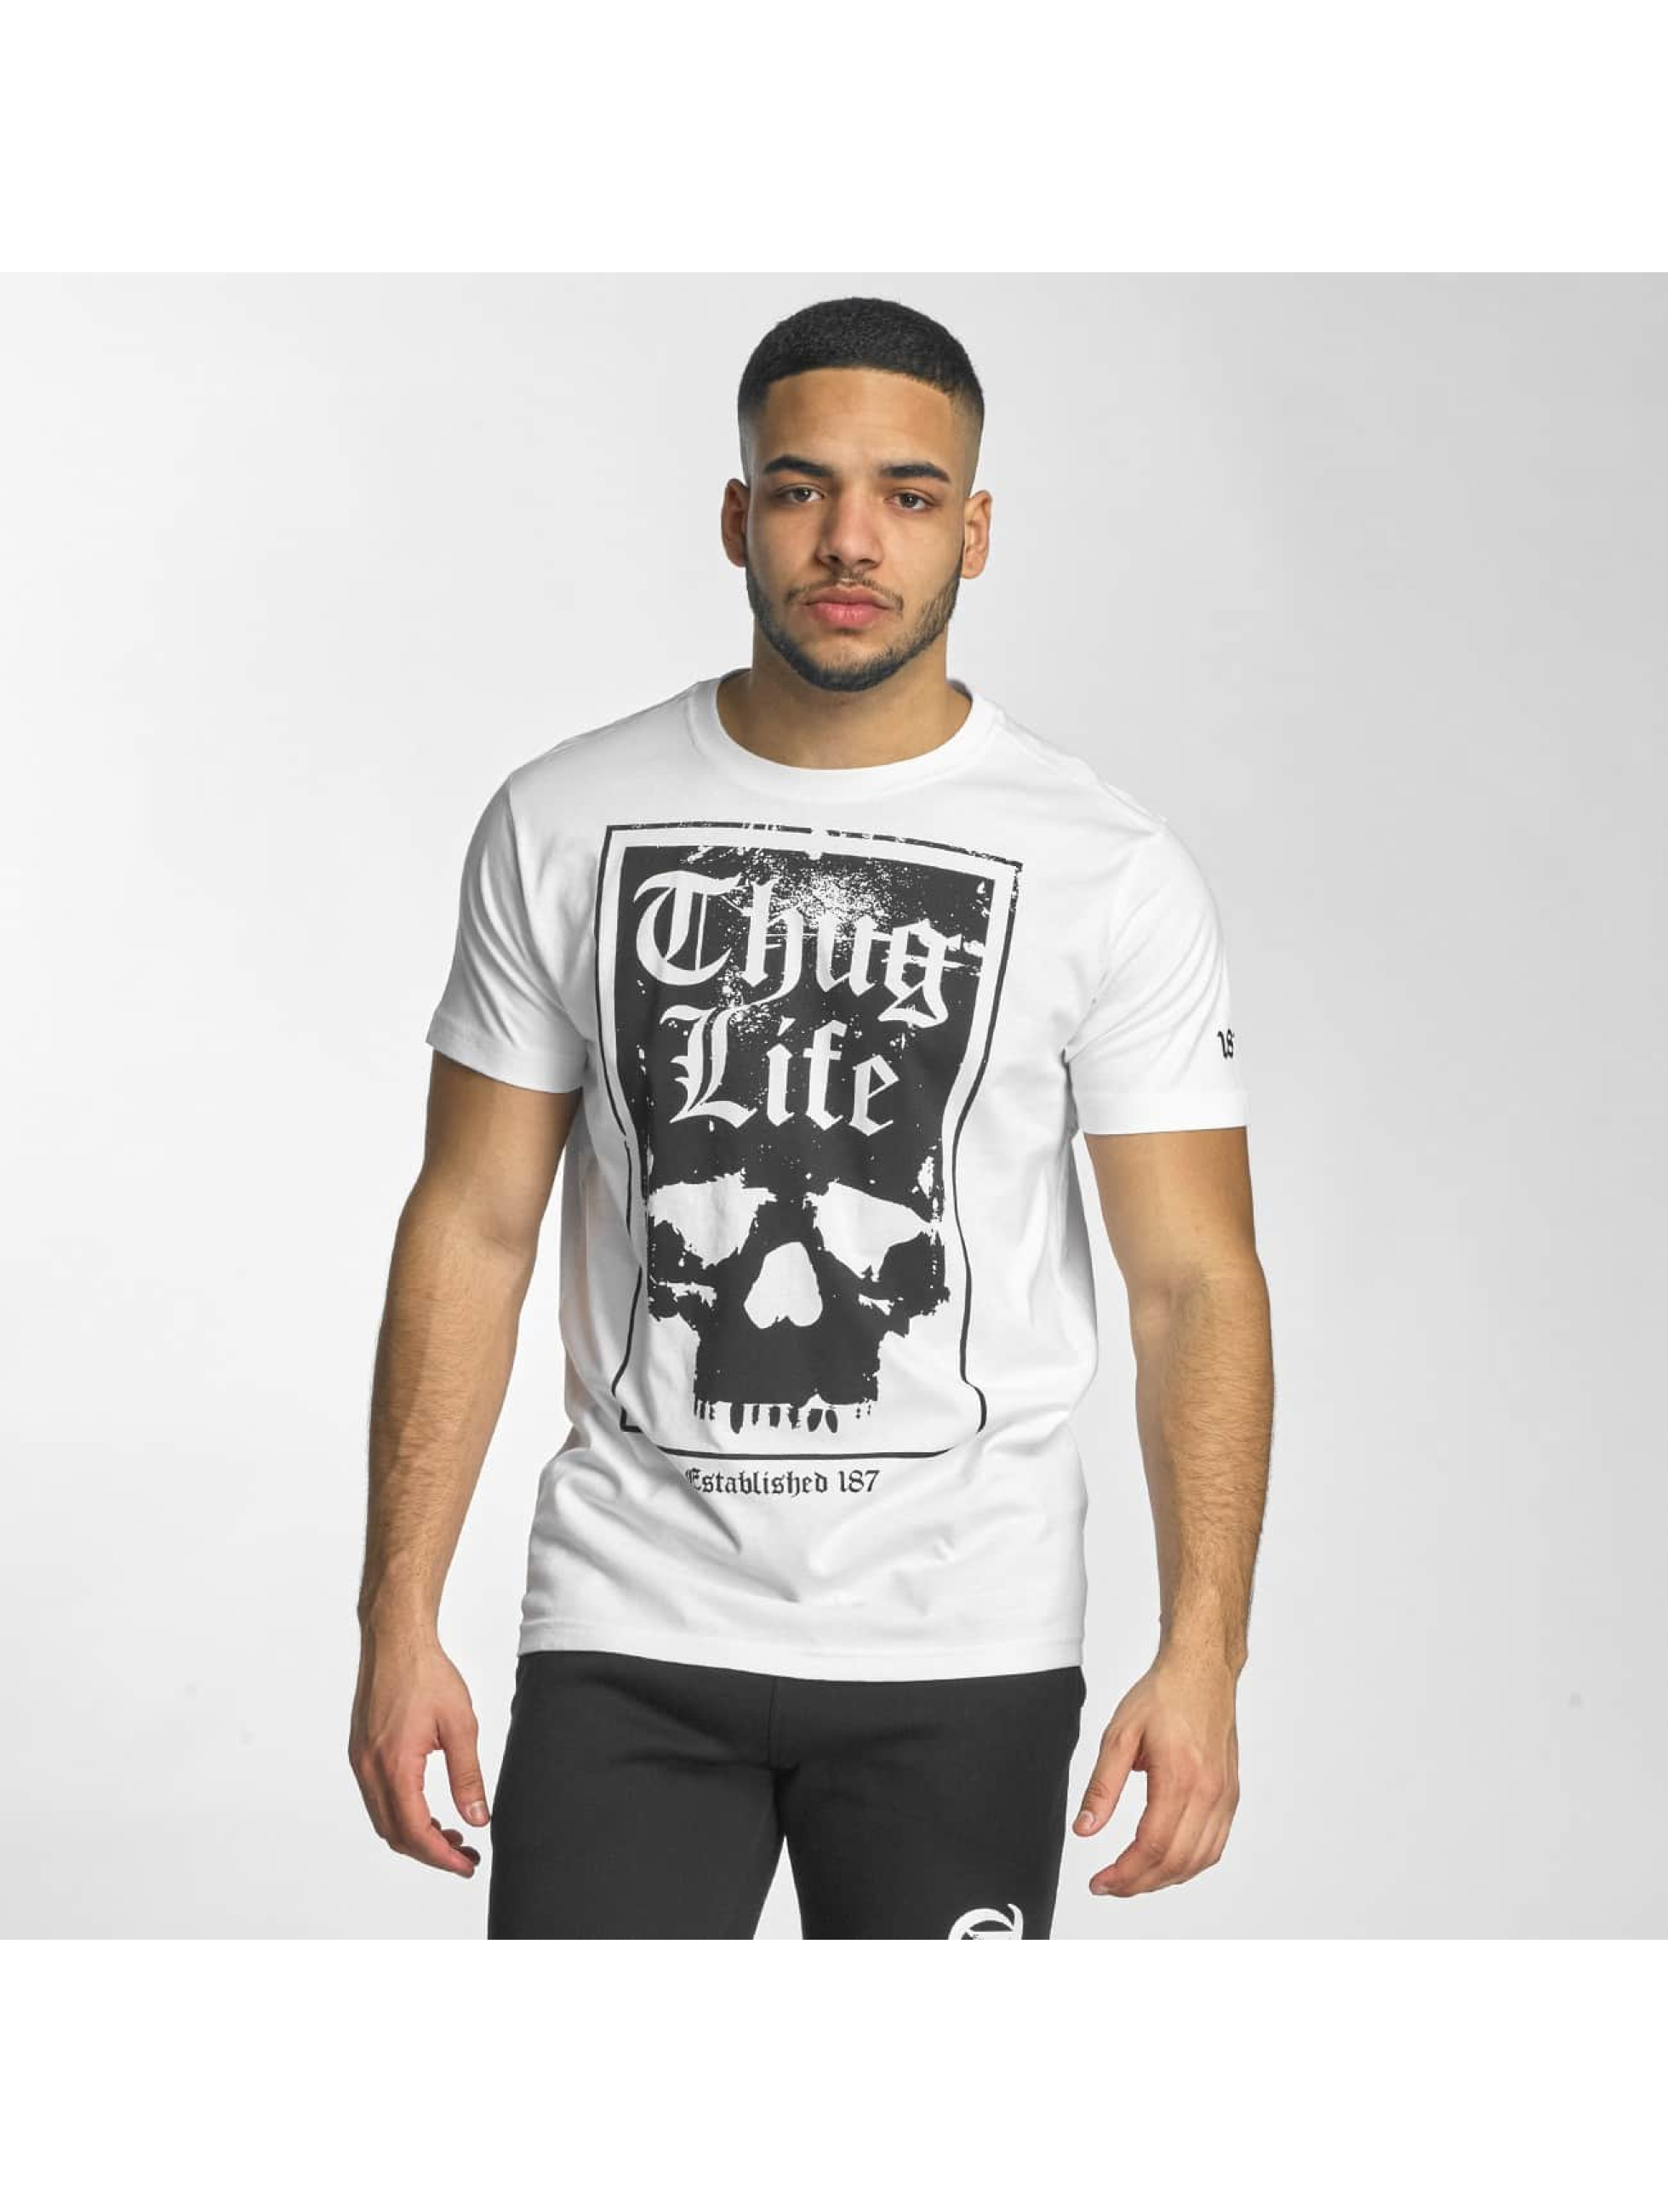 Thug Life T-Shirt Established 187 white